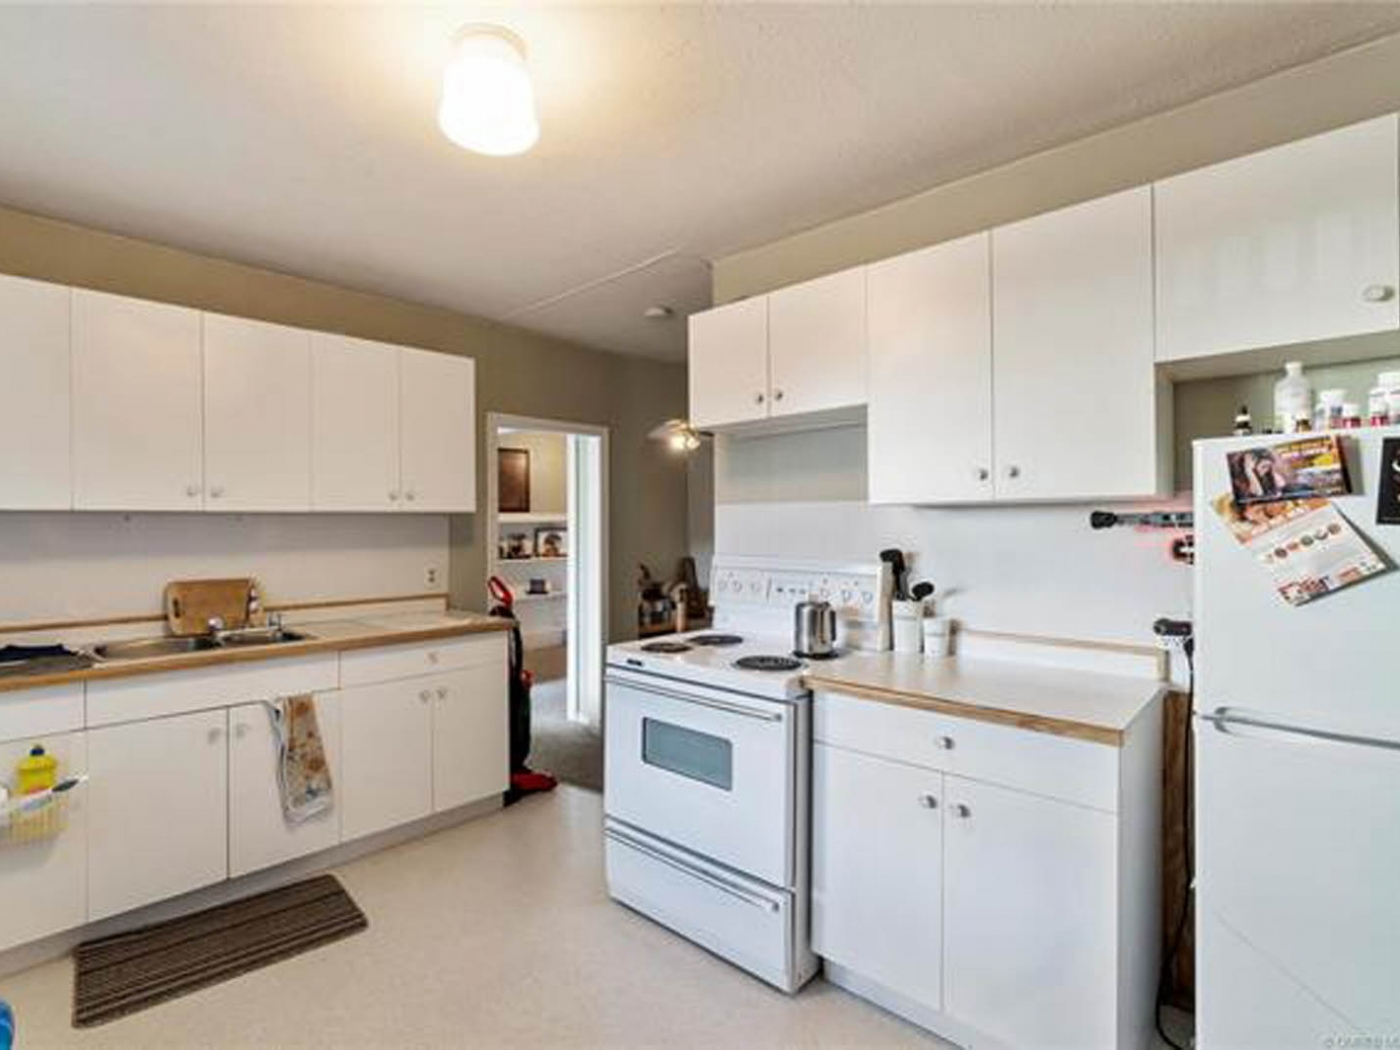 Retail space plus 2 apartment units is a business for sale in BC.